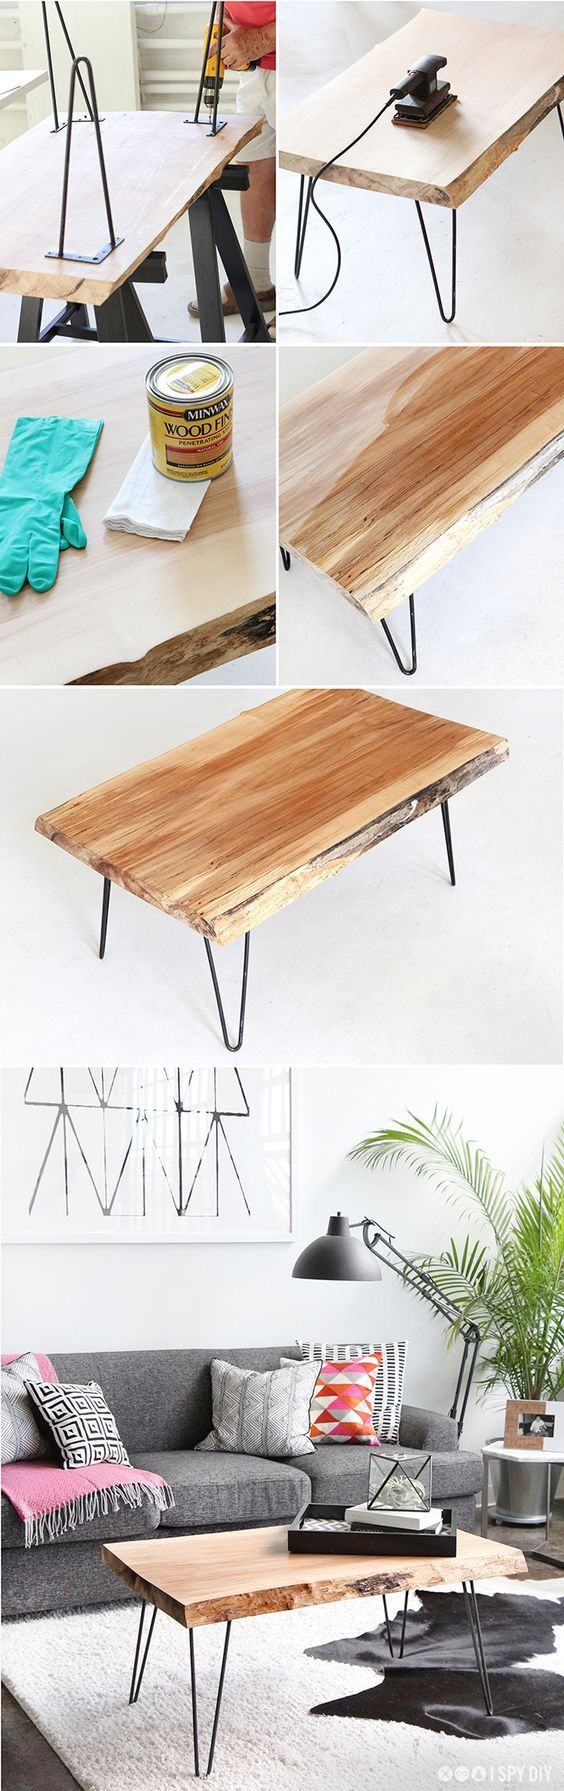 15 Creative Living Room Furniture Ideas - 8.DIY Wood Slab Coffee Table - Diy & Crafts Ideas Magazine